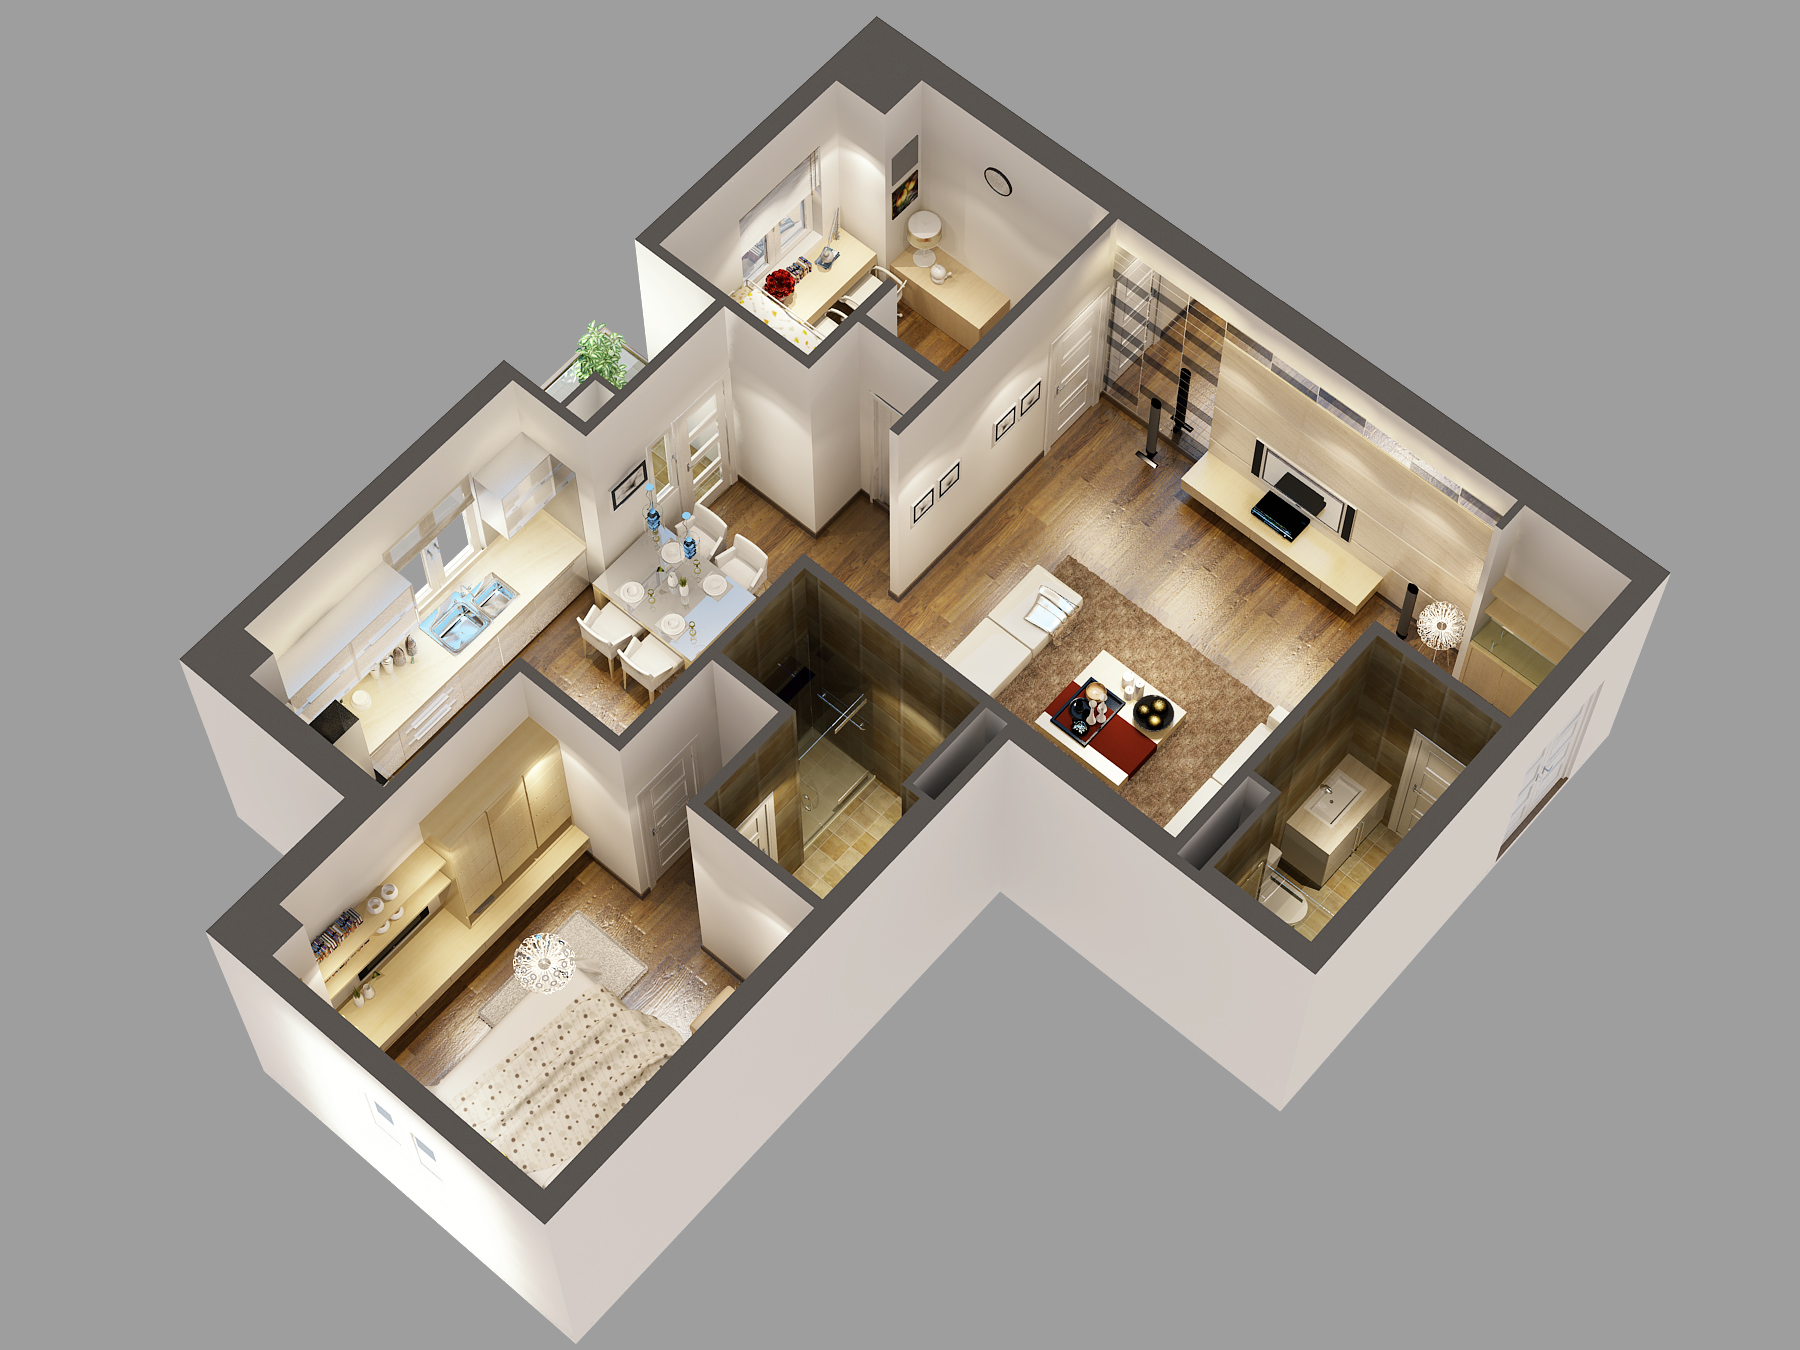 Detailed house cutaway 3d model 3d model max 3d model sites